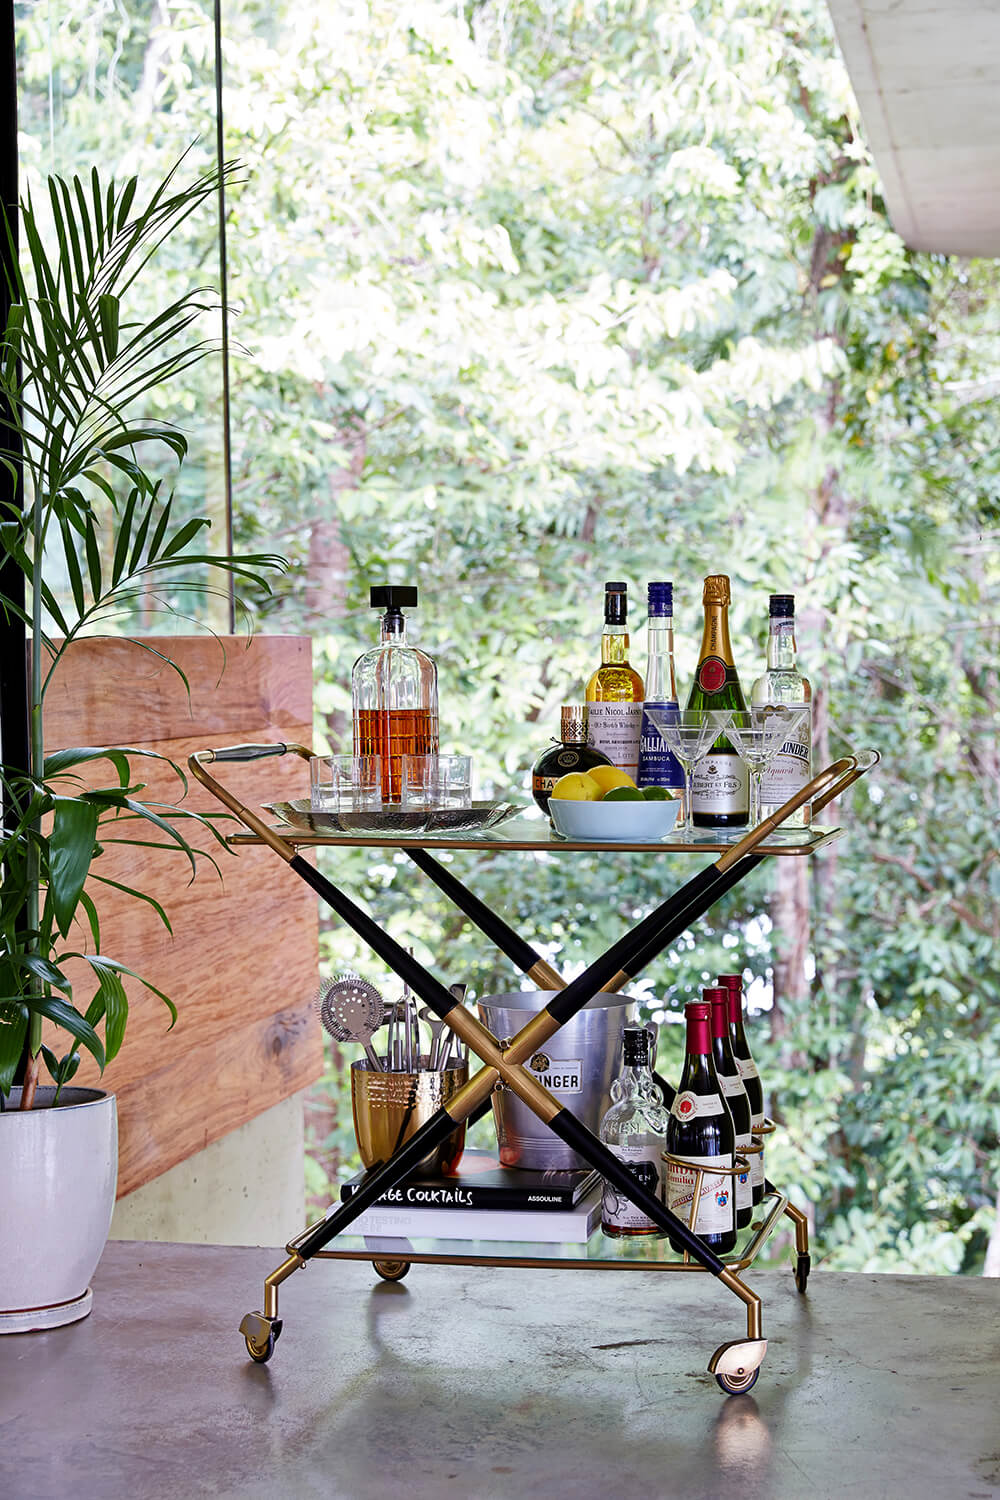 The home is rife with idiosyncratic touches and fine details like this bronzed drink cart, standing against the glass facade.